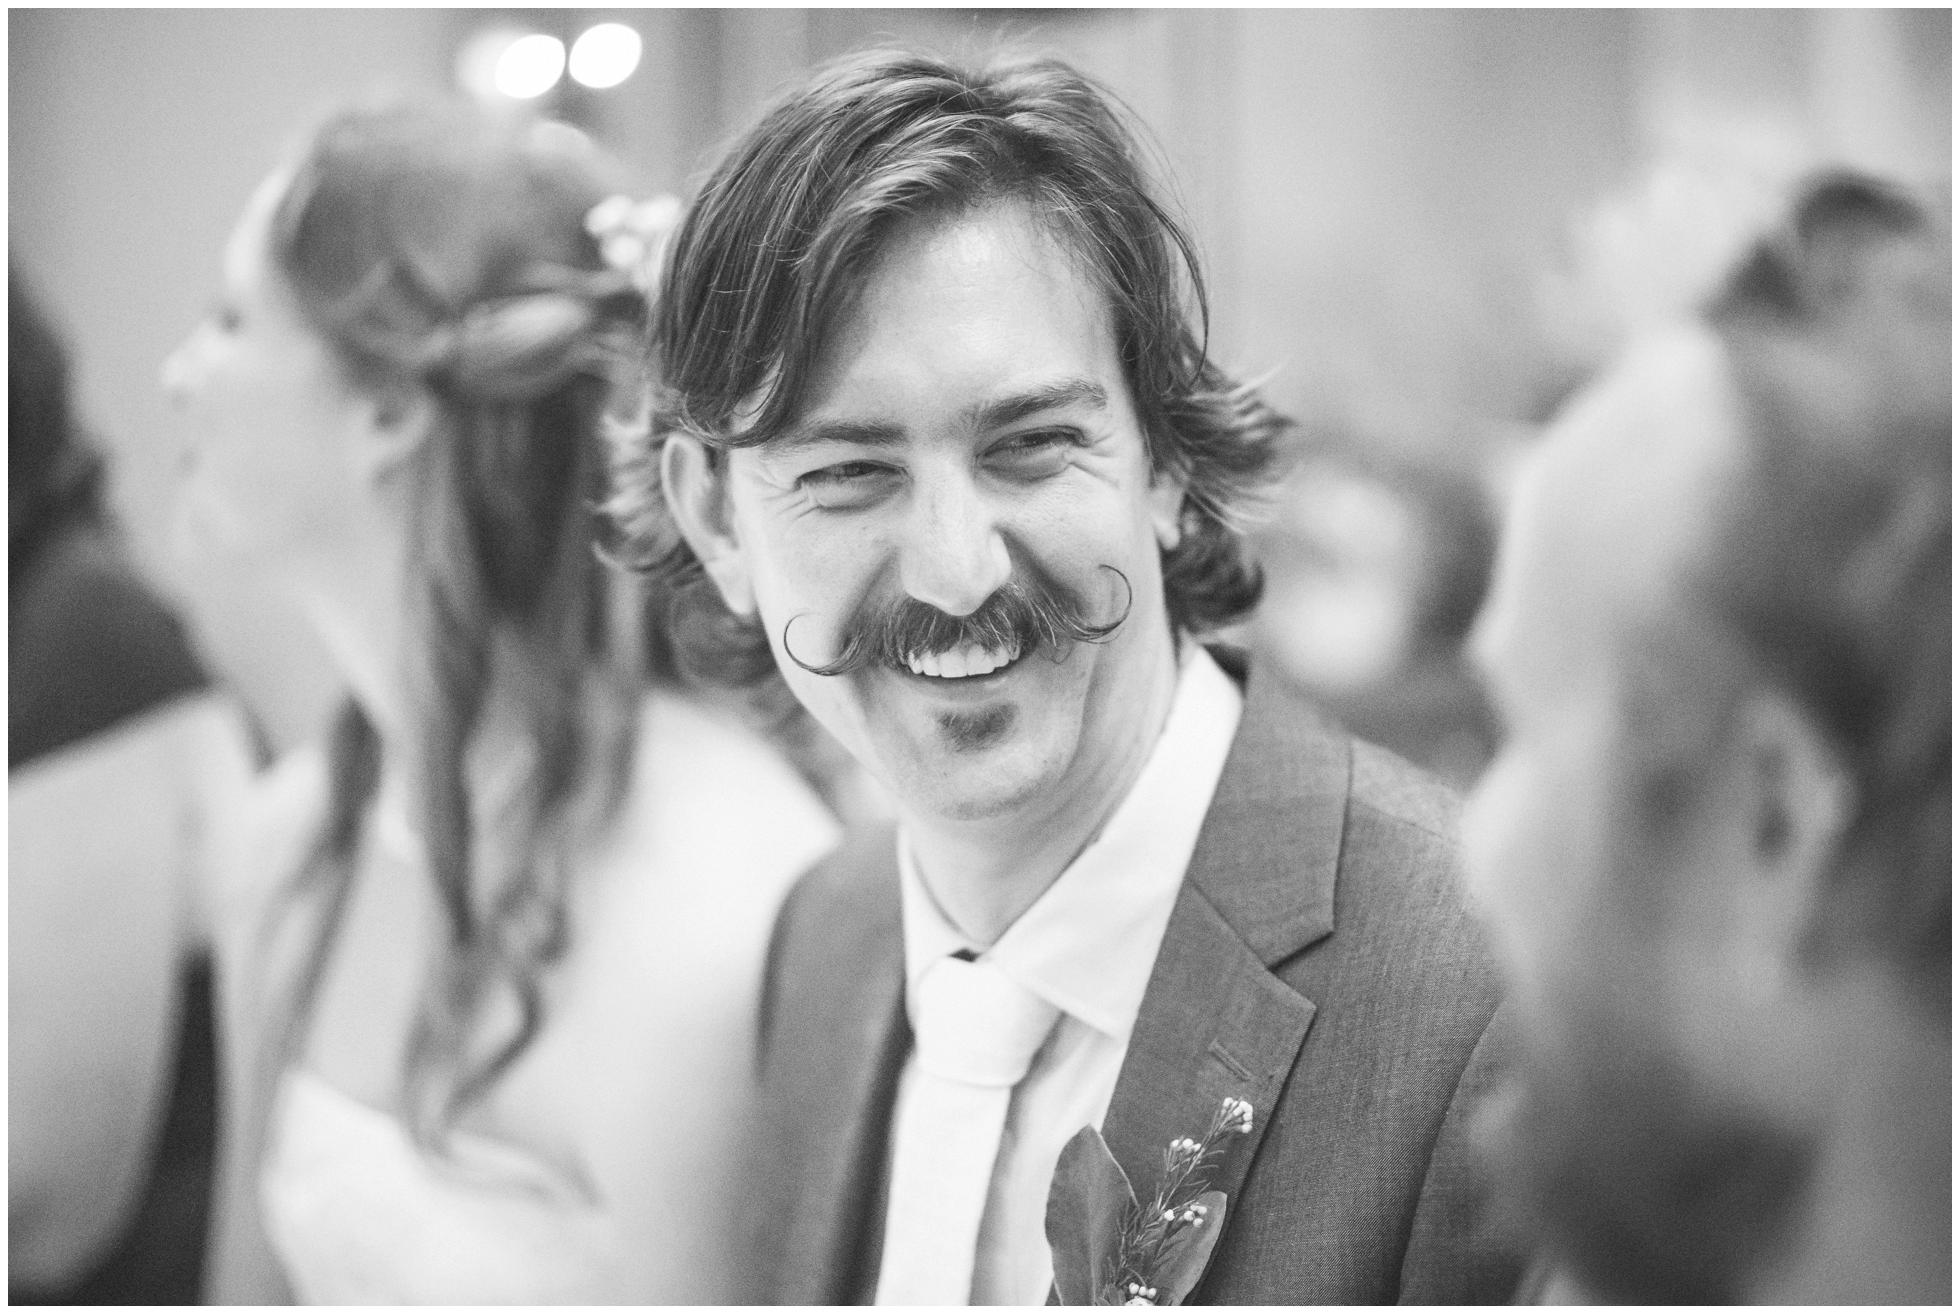 Son's laughter at his Sydney wedding. Handlebar moustache on show!